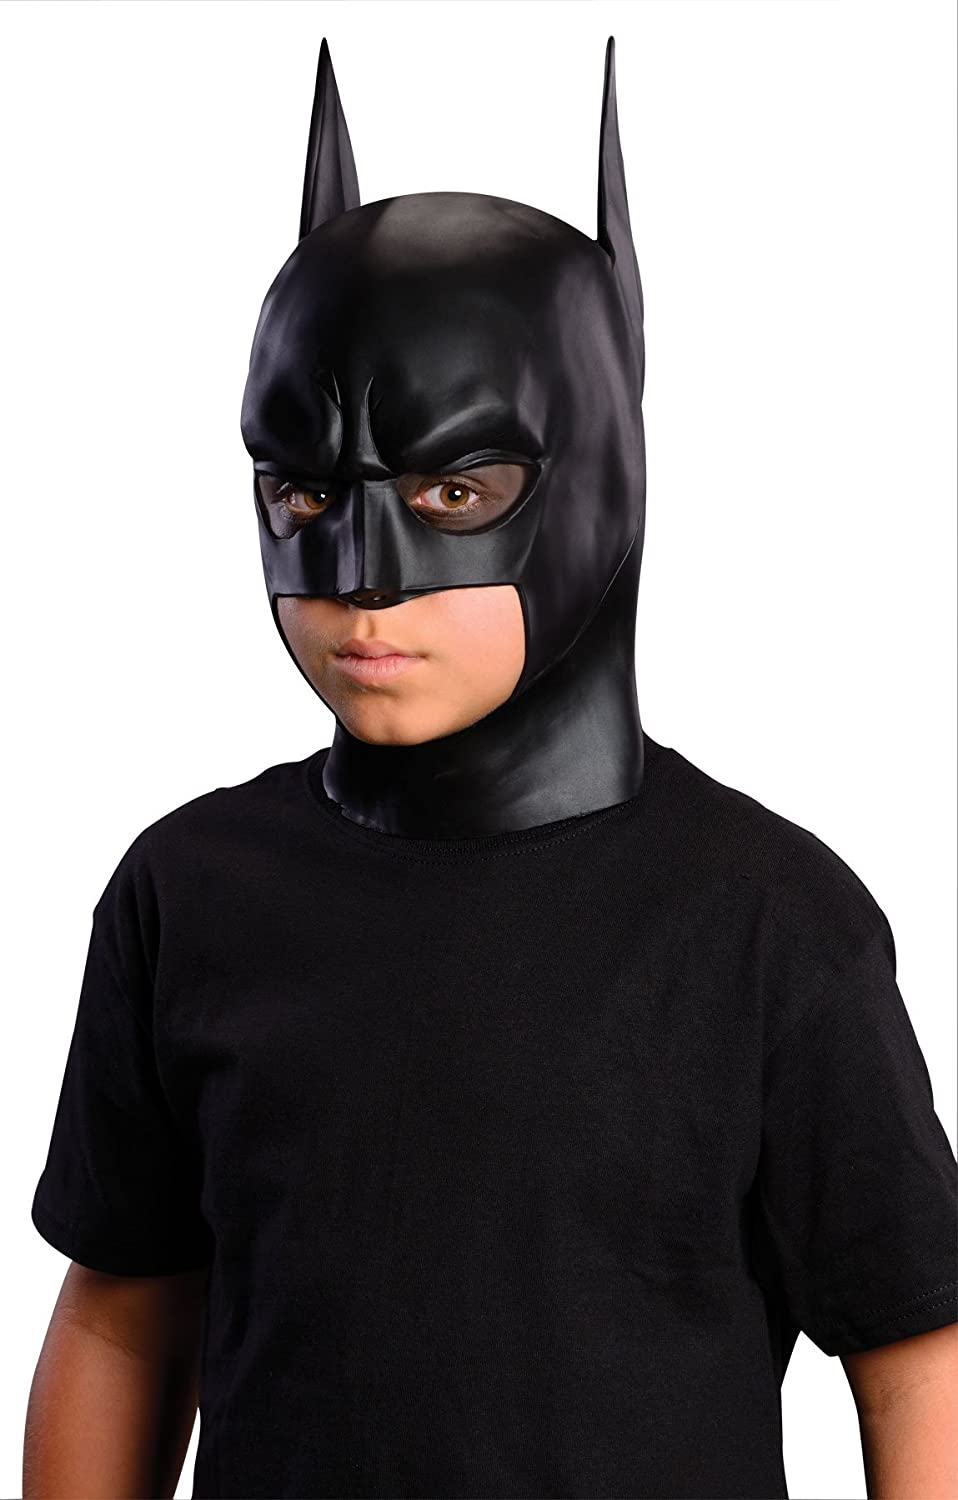 Rubies Costume Co Batman The Dark Knight Full Mask, Child Size (Black) Rubies Toys CA 4888